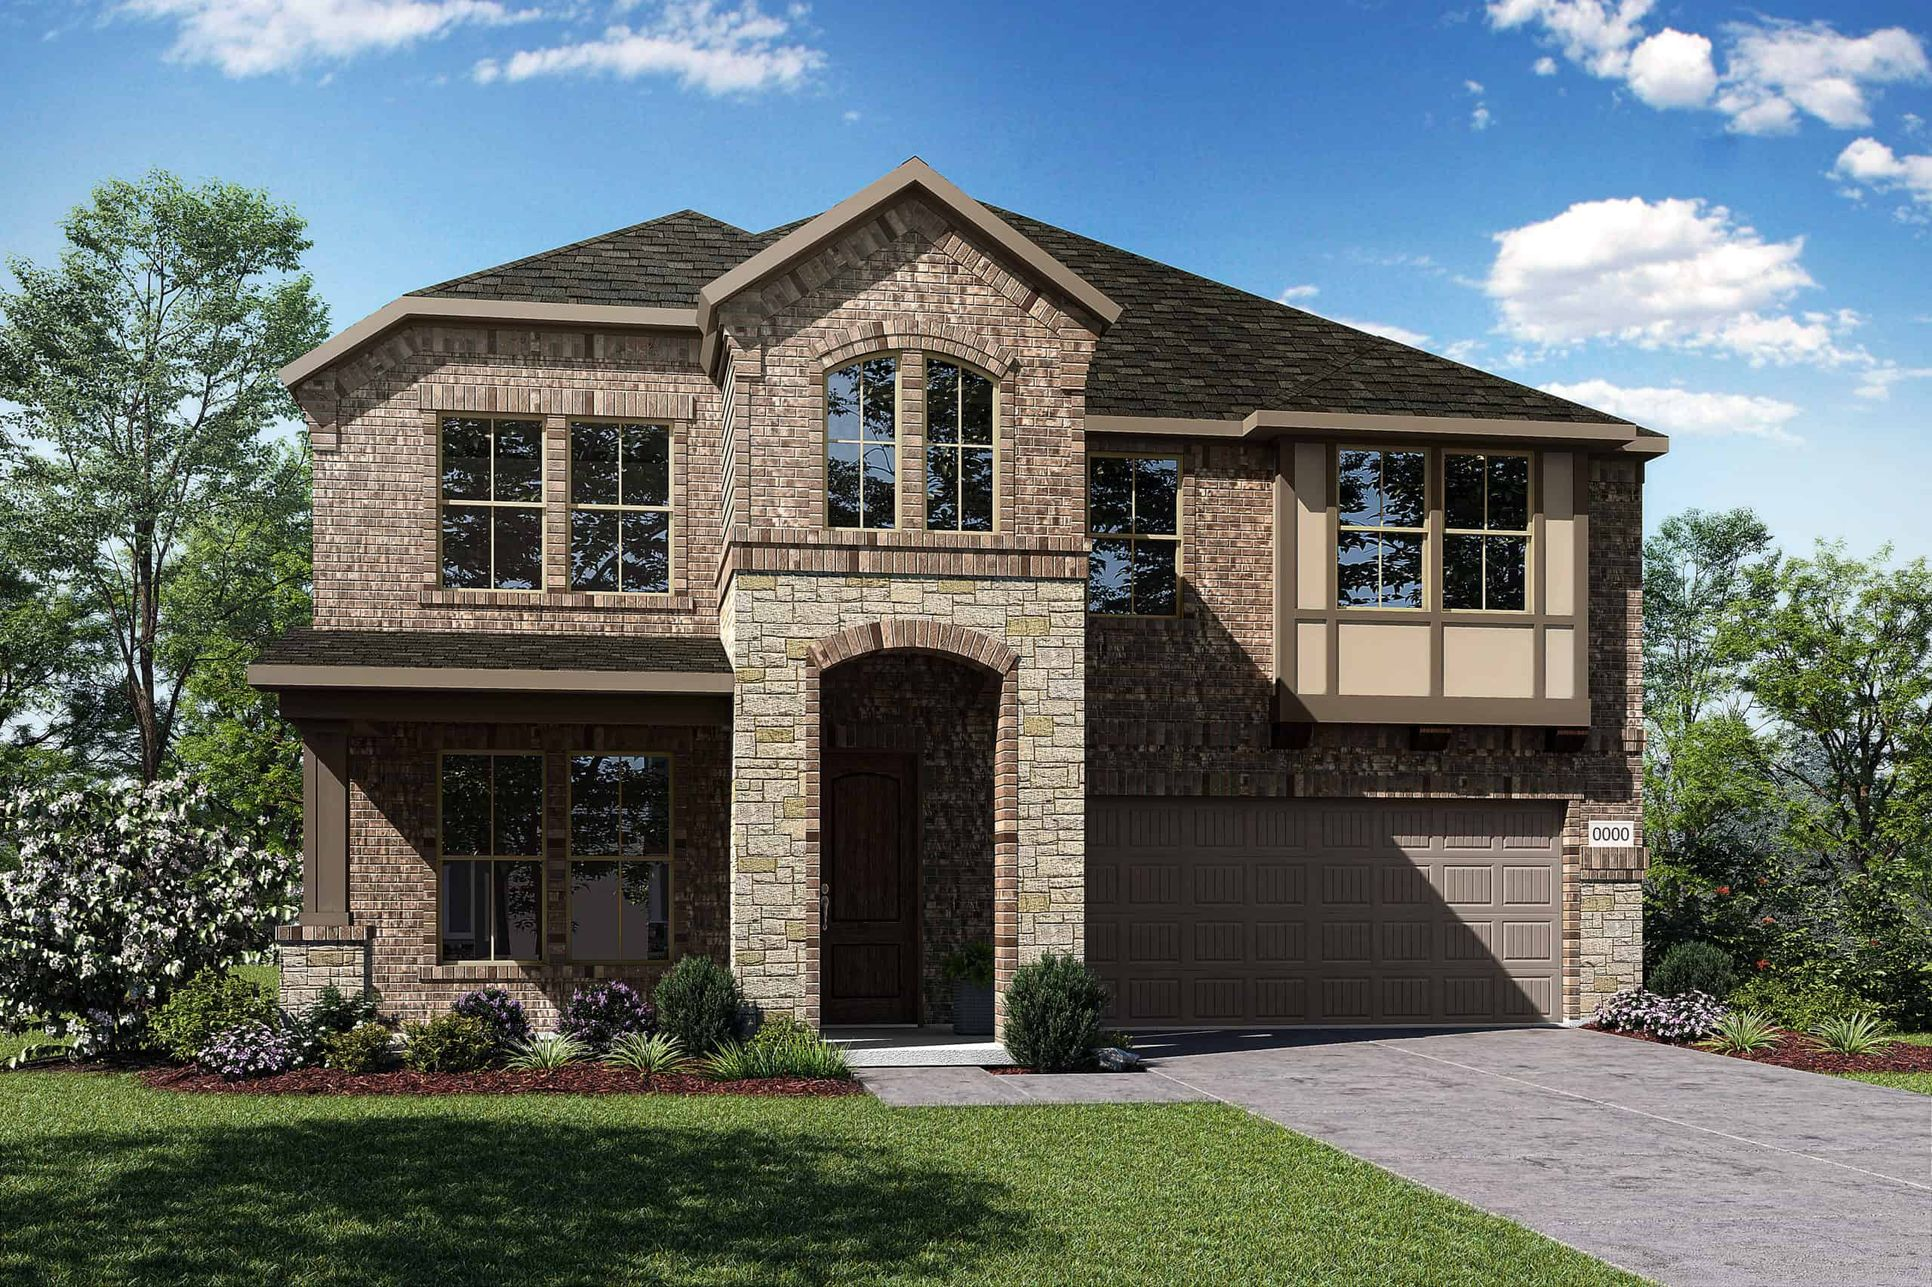 Elevation F:Elevation F is a two story tudor inspired brick and stone home design featuring large front porch an